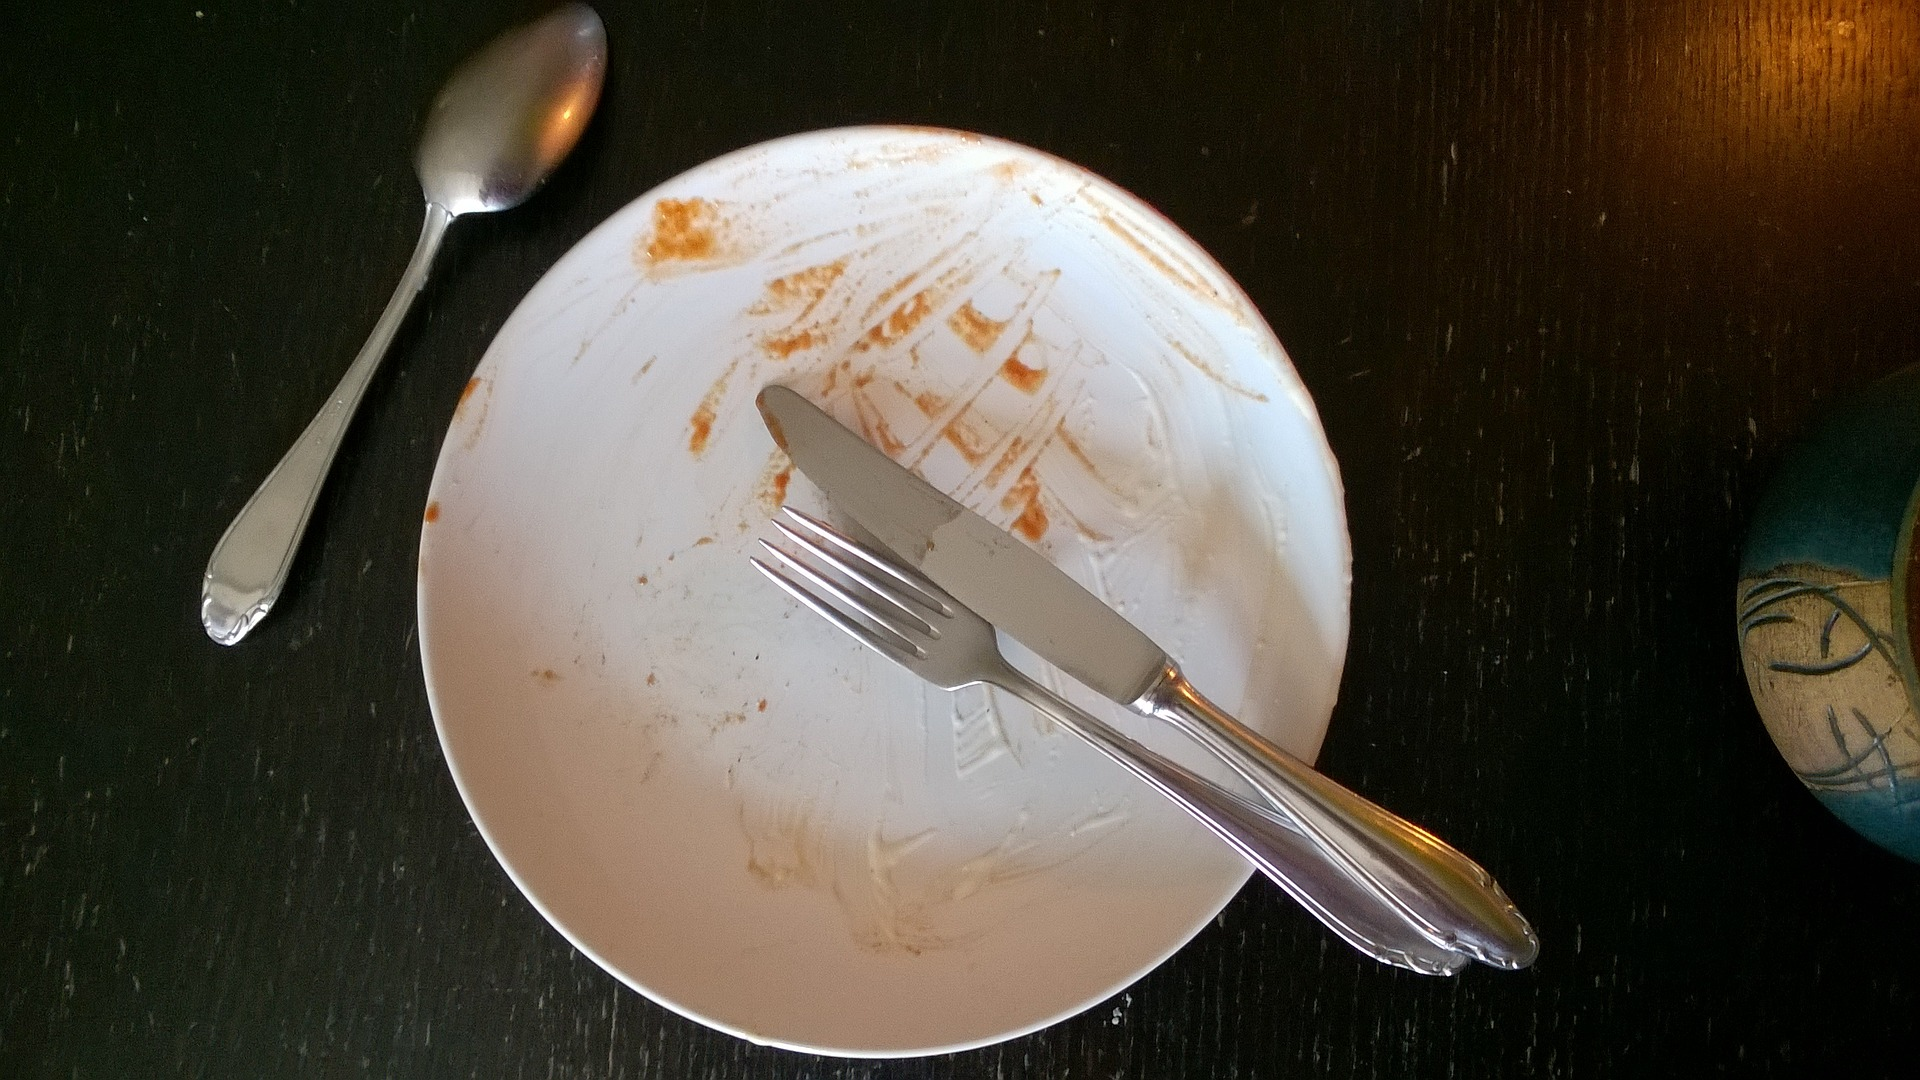 Dirty plate with cutlery.